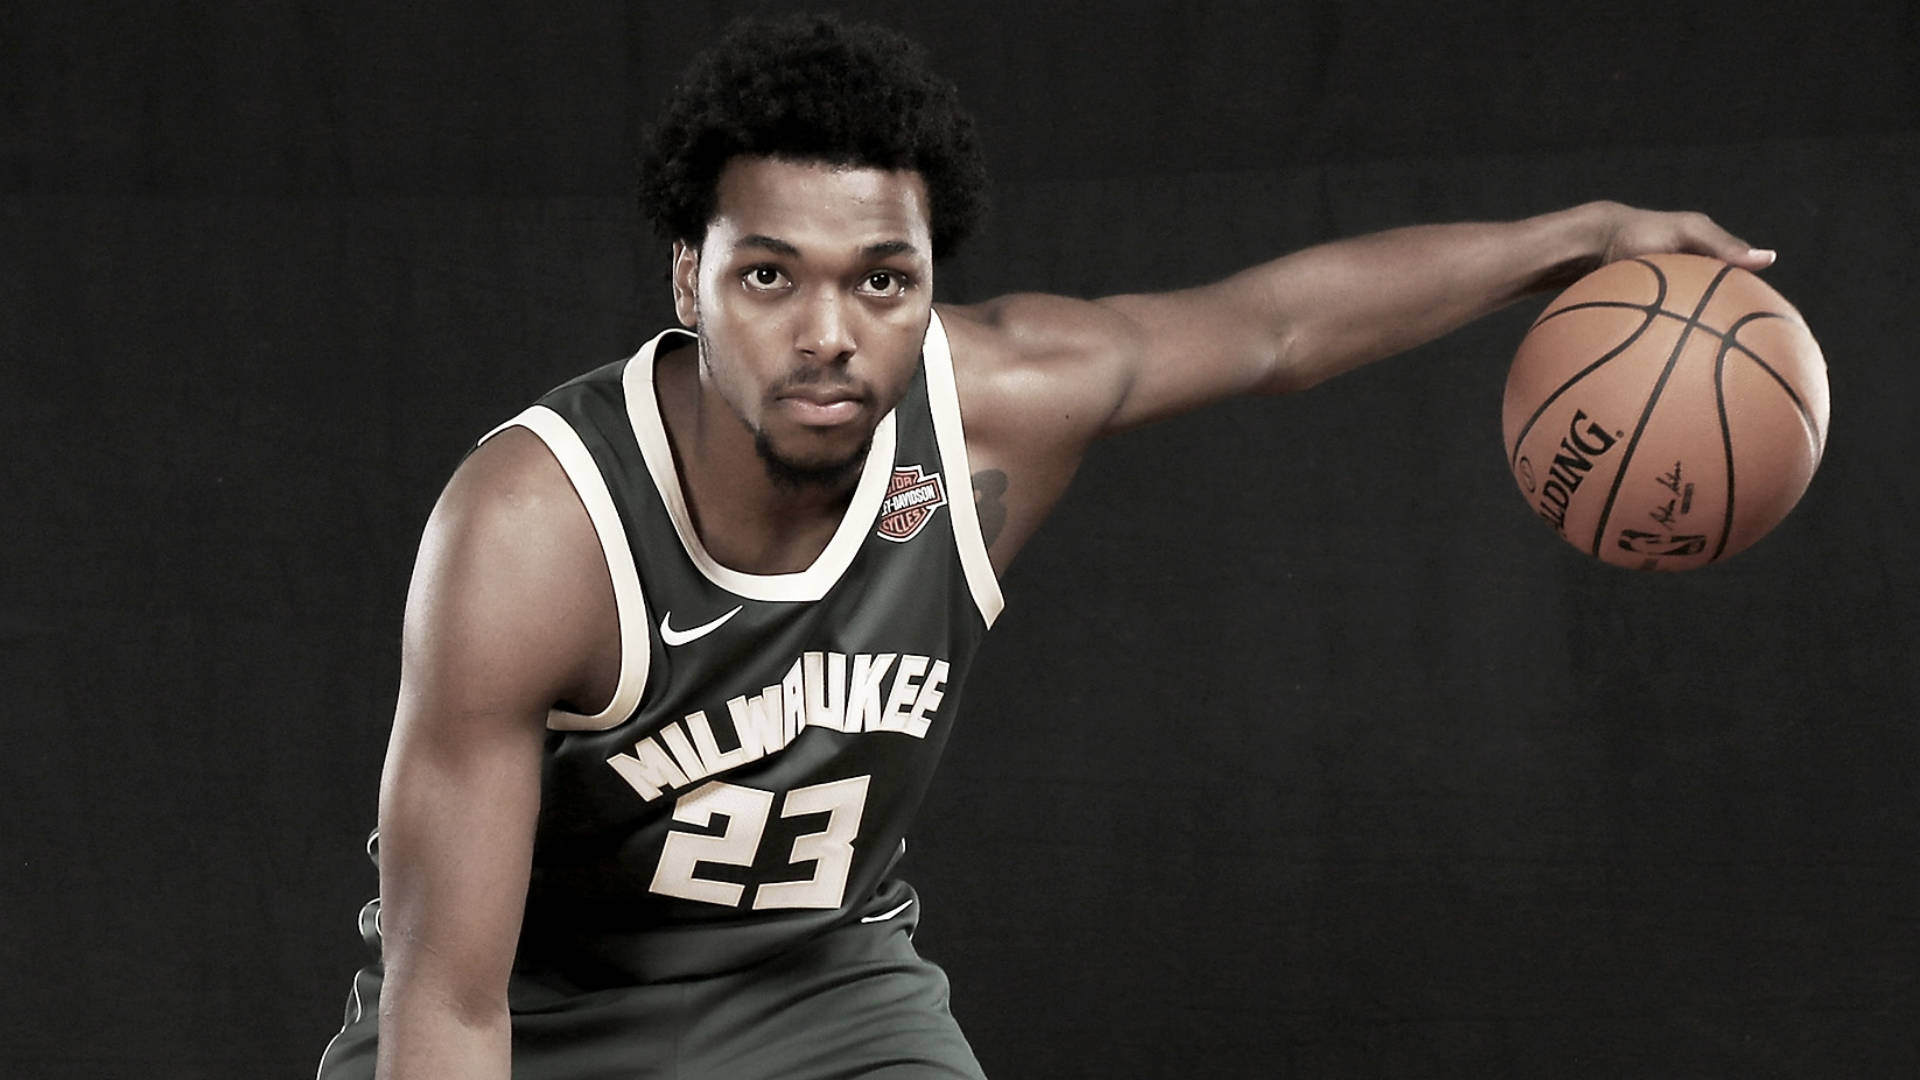 Video of police tasing Milwaukee Bucks rookie Sterling Brown released